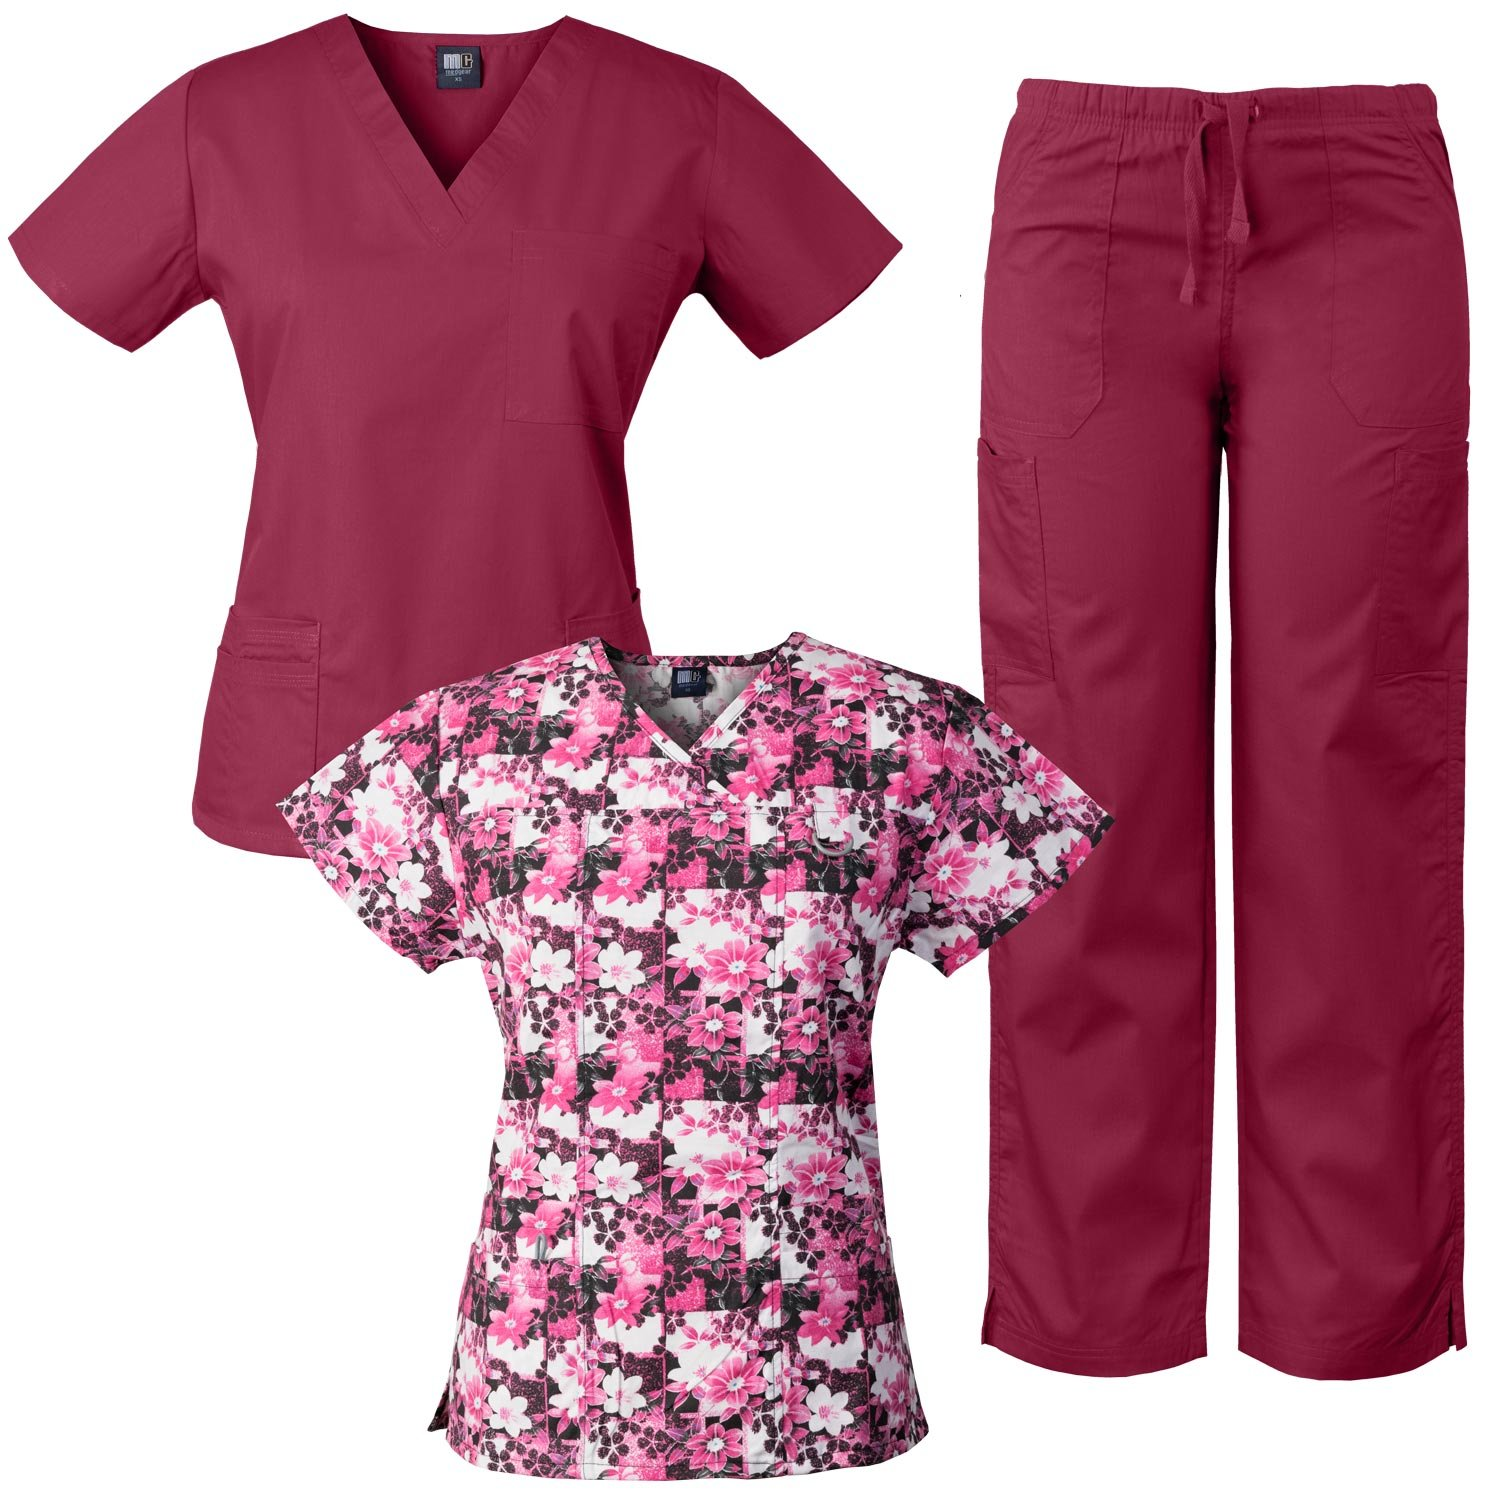 Medgear 3-Piece Combo, Eversoft Scrubs Set with Printed Scrubs Top FPGO